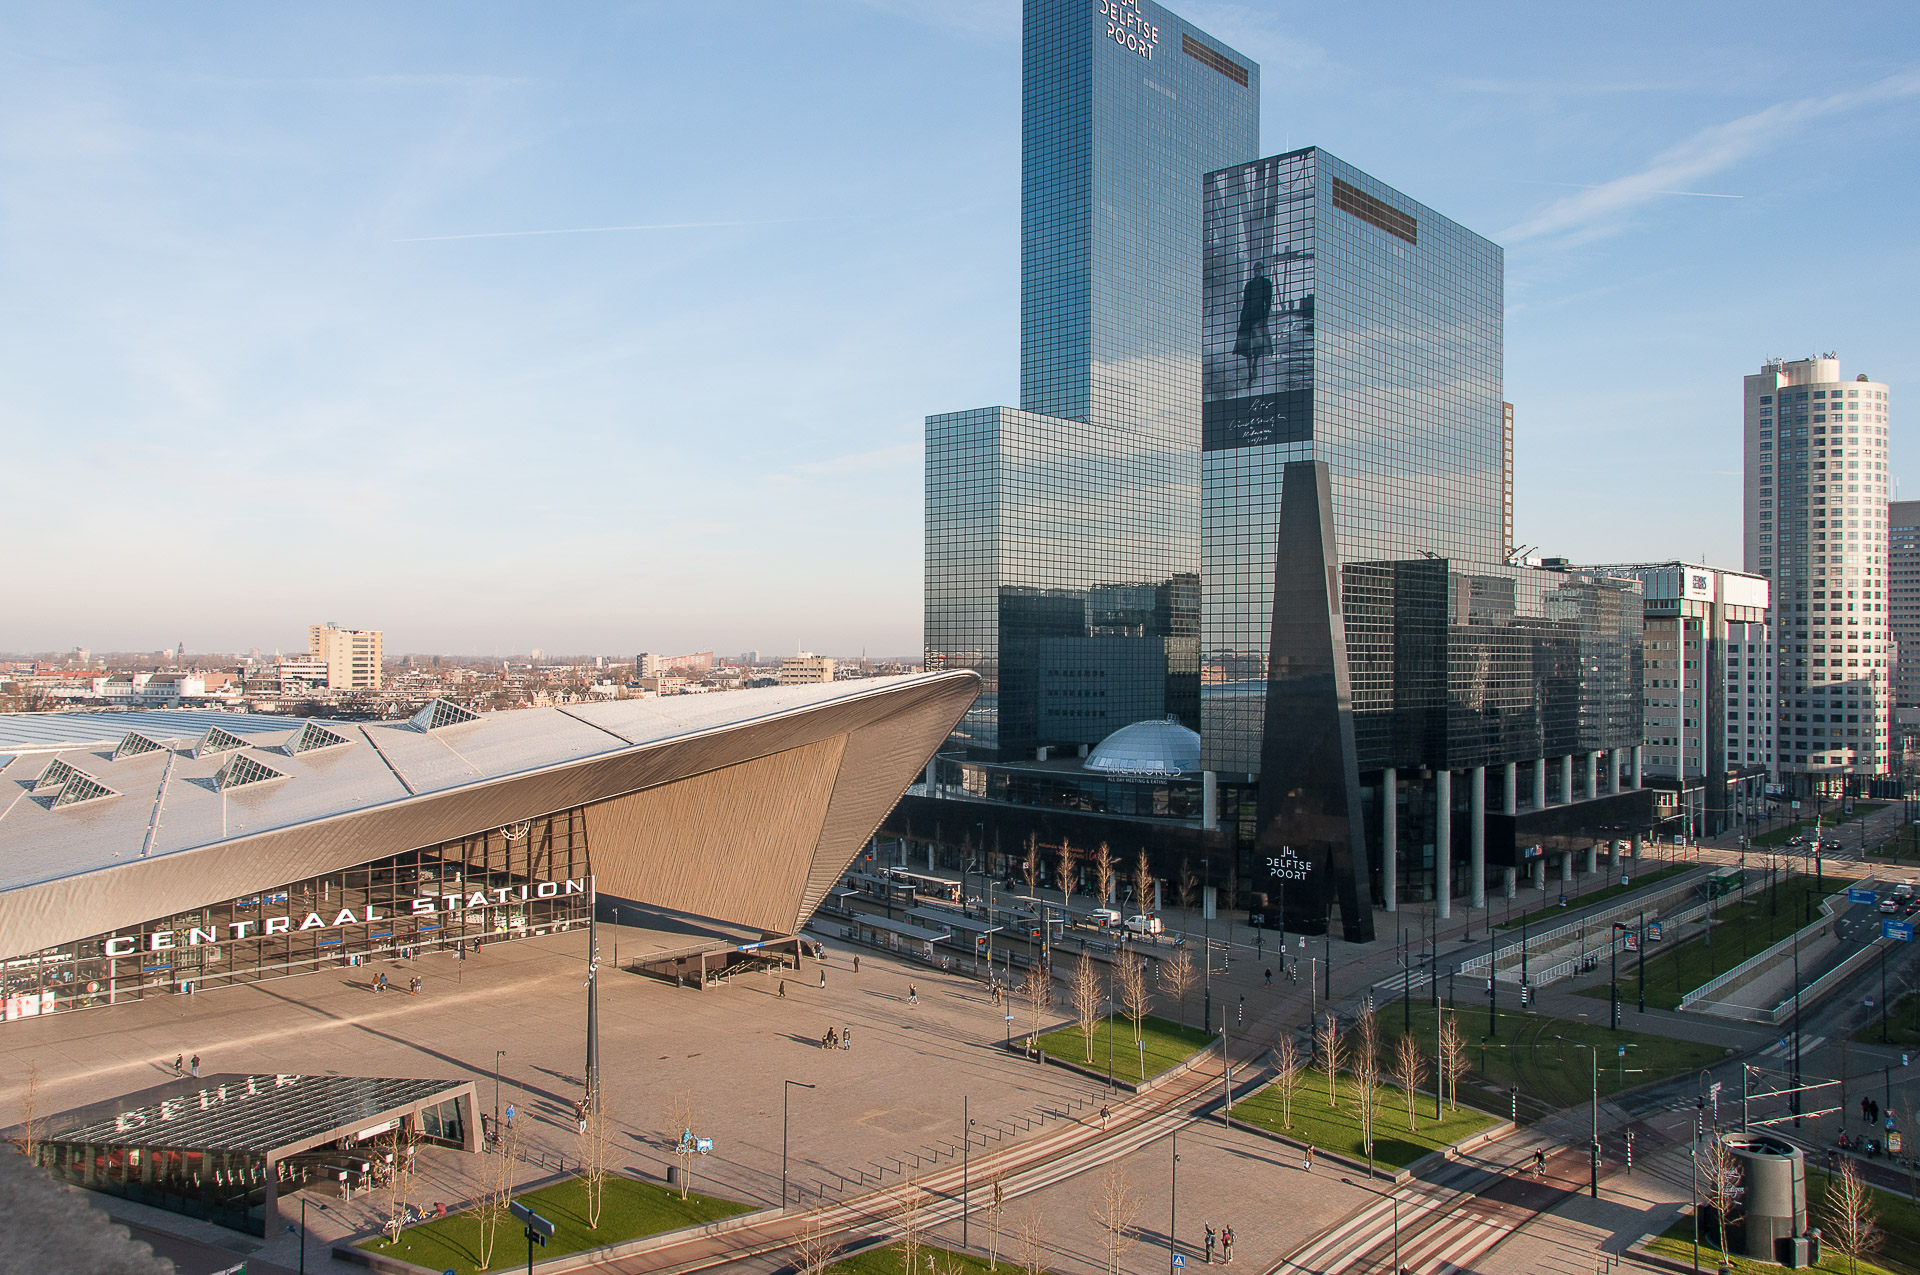 PREMIER SUITES PLUS Rotterdam central station